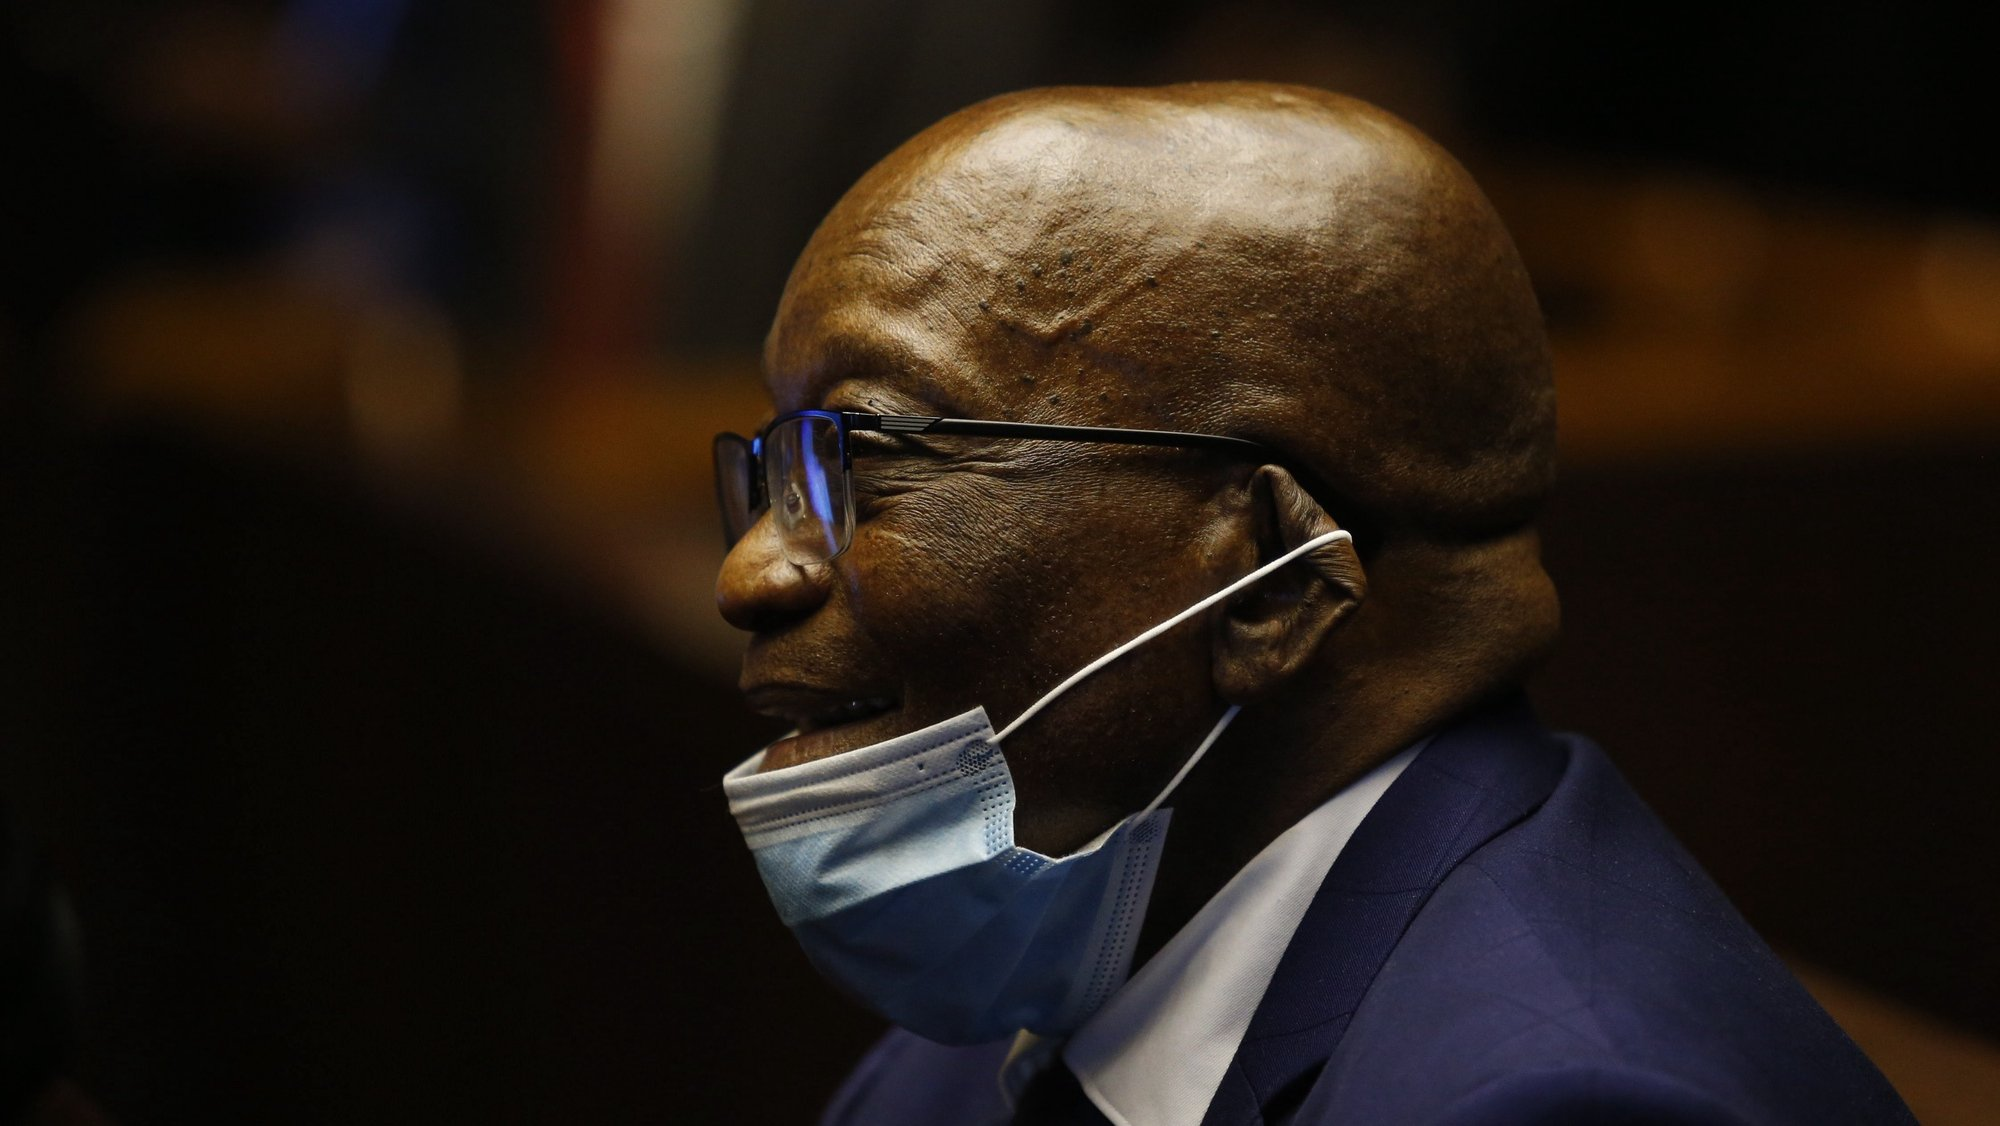 epa09206227 Former South African President Jacob Zuma appears in the Pietermaritzburg High Court, in Pietermaritzburg, South Africa, 17 May 2021. The former President is facing corruption charges related to arms deals that happened during this presidency.  EPA/ROGAN WARD / POOL